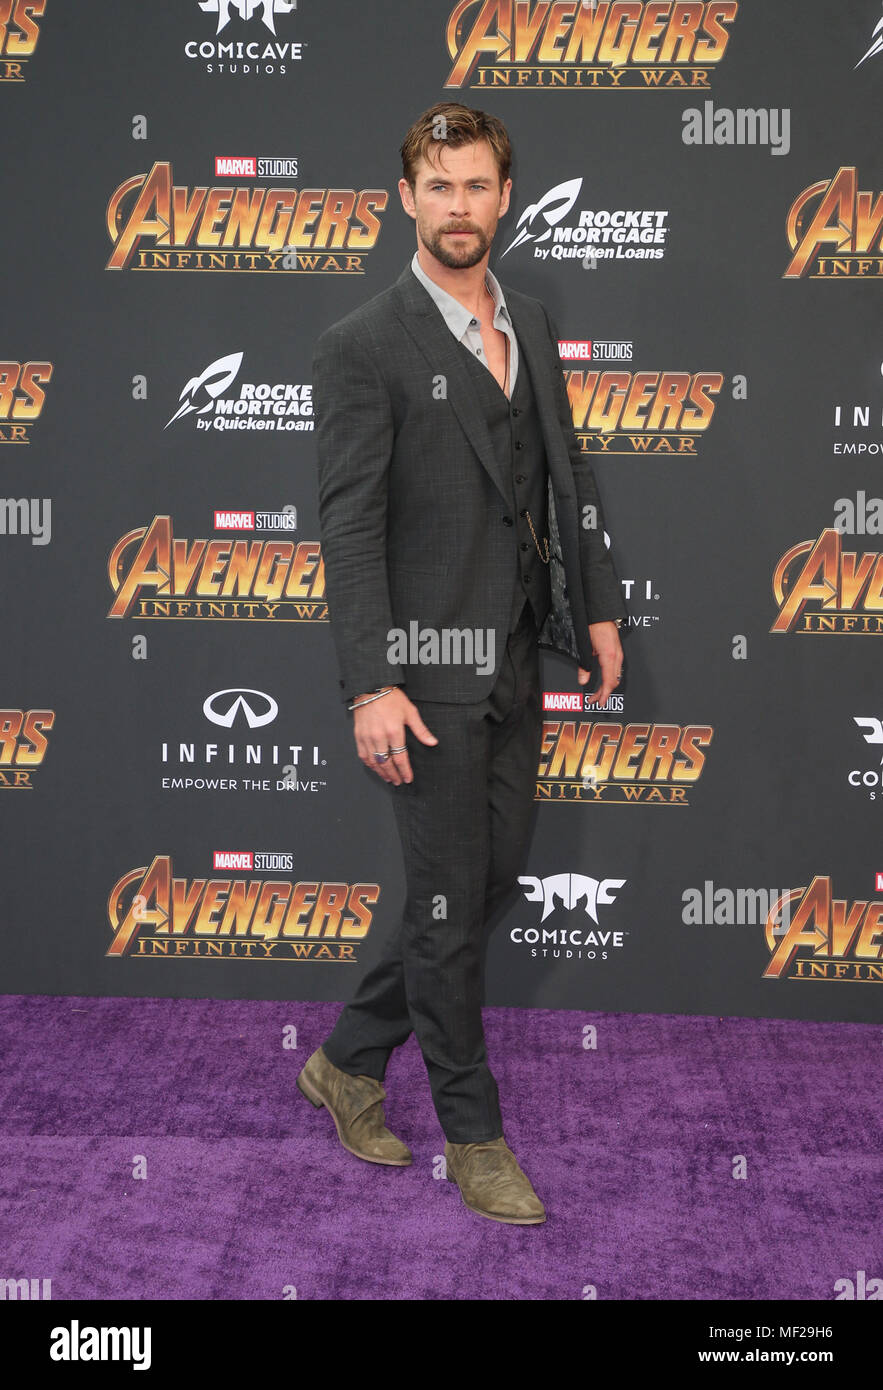 HOLLYWOOD, CA - APRIL 23: Chris Hemsworth, at the World Premiere of Avengers: Infinity War at El Capitan Theatre in Los Angeles, California on April 23, 2018. Credit: Faye Sadou/MediaPunch Stock Photo